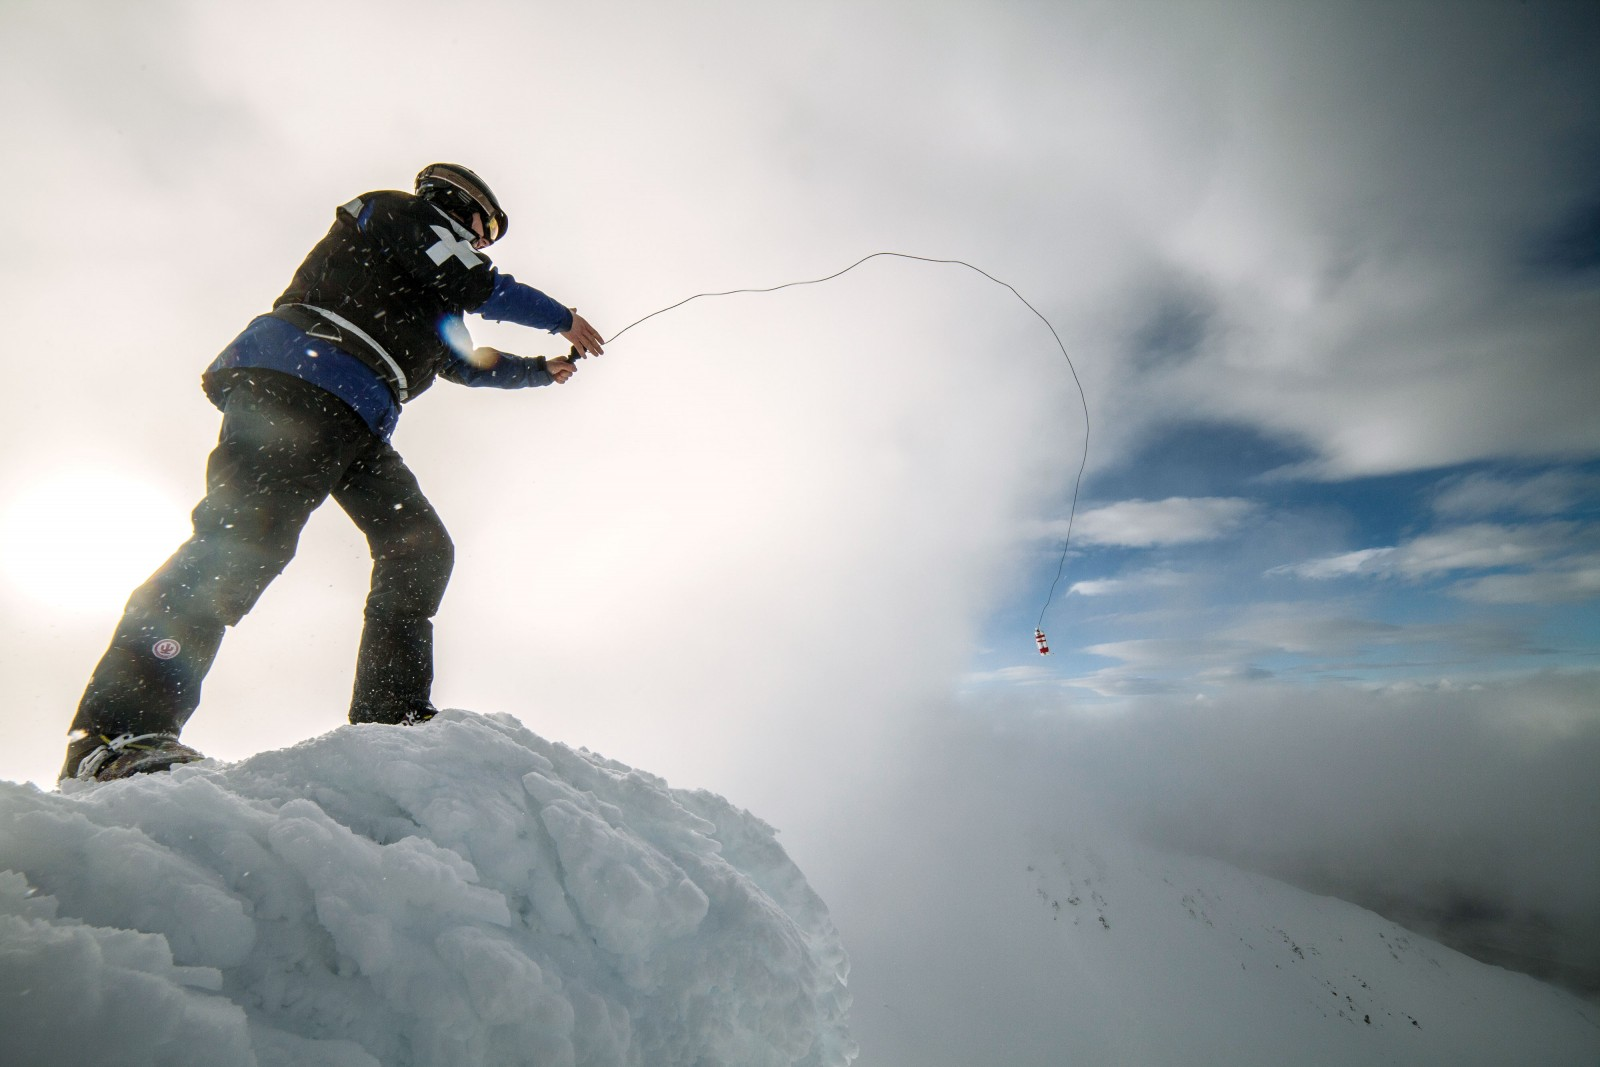 On ski fields, snow safety personnel routinely monitor the accumulation of snow and pre-empt avalanches by setting off controlled slips. This is often done by traversing dangerous faces on skis while belayed on a safety rope, using explosives or even cannons.